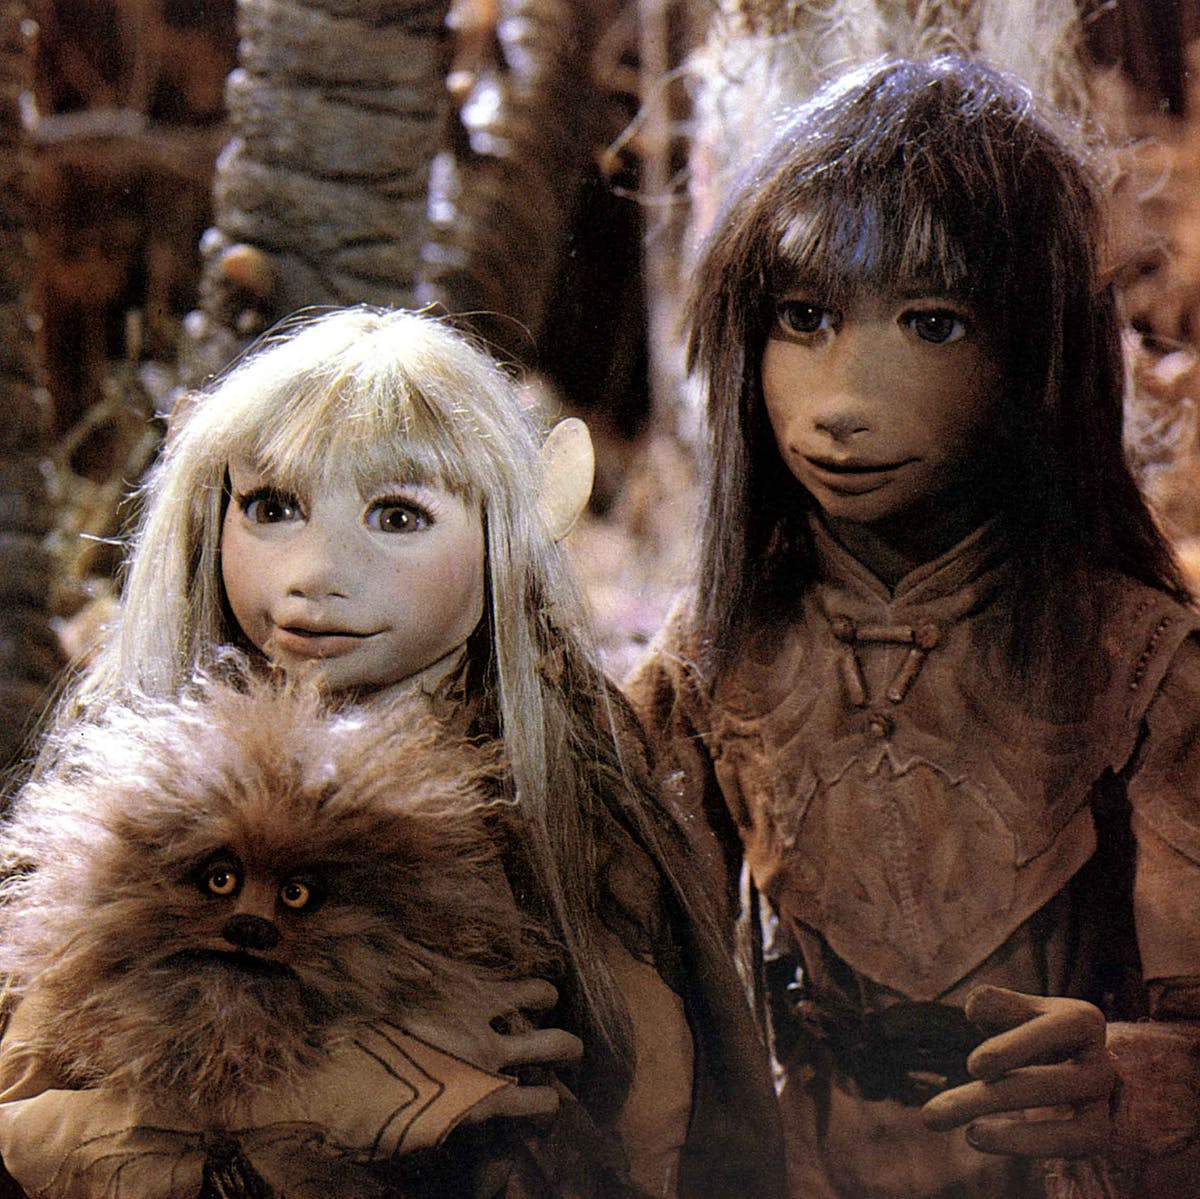 'Dark Crystal': Before 'Age of Resistance,' How to Stream the Original